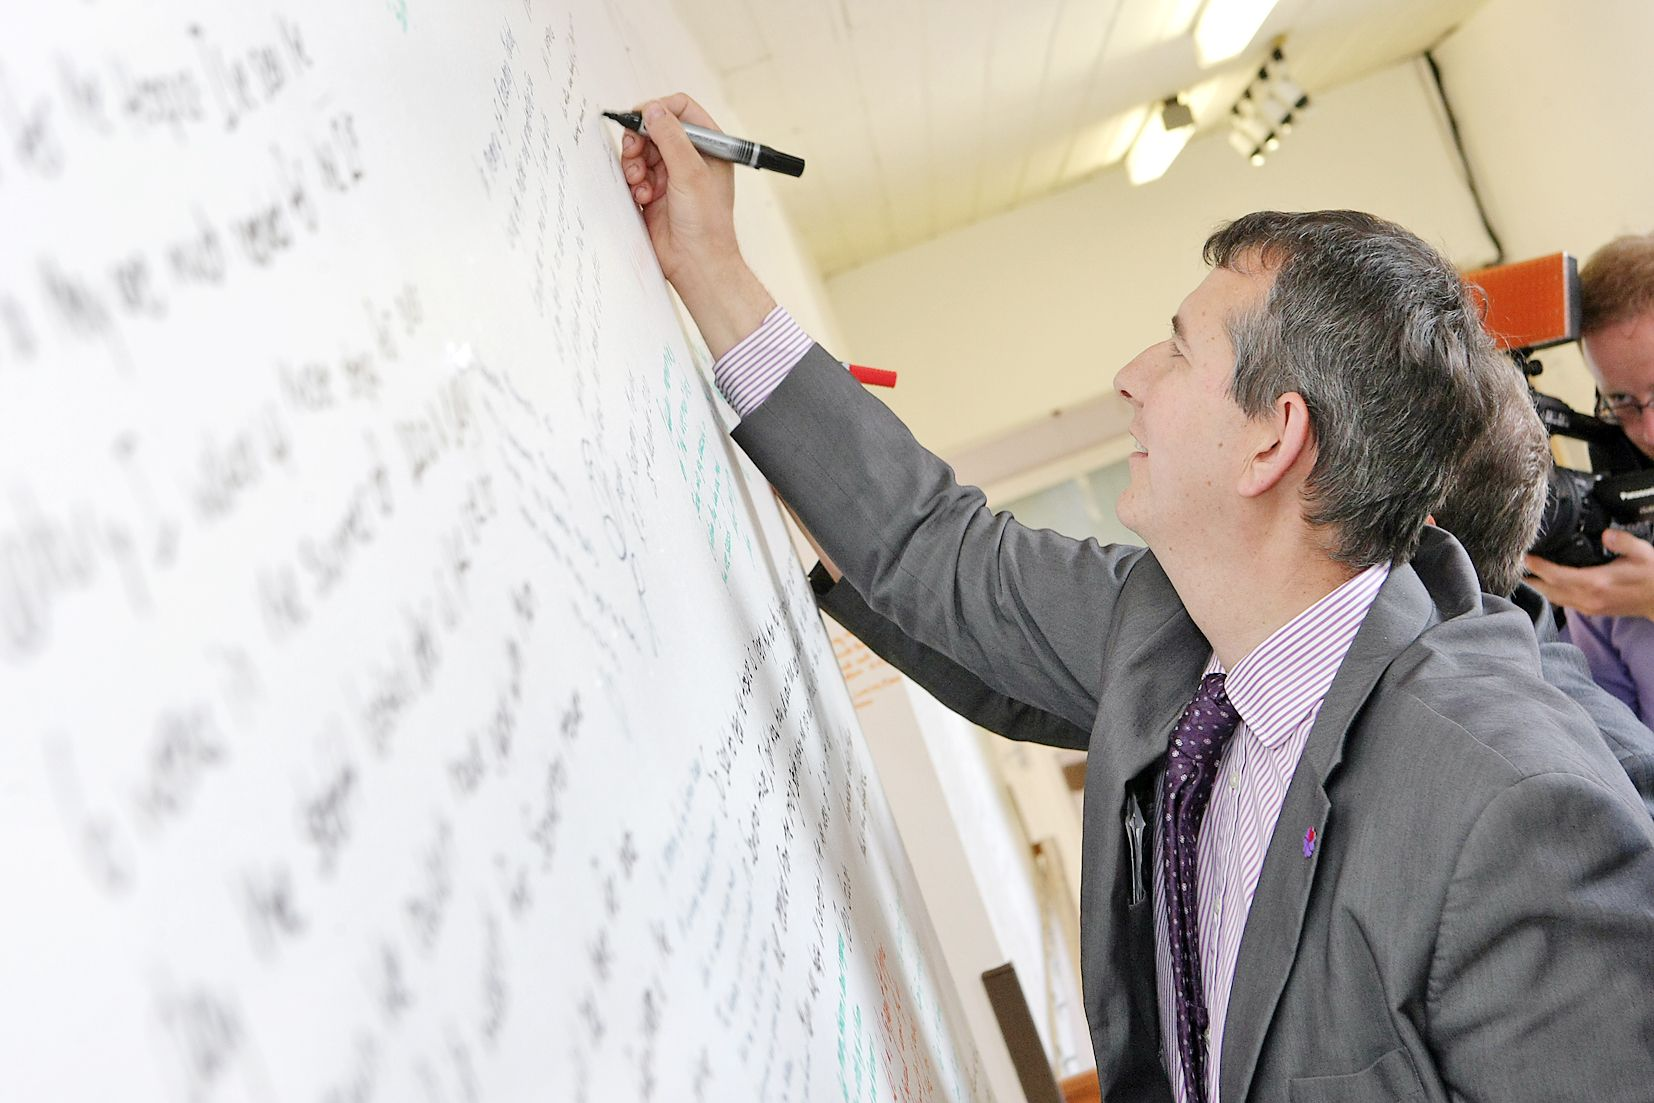 ""\'DOUR AND UNCHARISMATIC"""": Edwin Poots bidding for DUP leadership""1654|1103|?|en|2|7808b99199565dd7f8fc79413bc1f385|False|UNLIKELY|0.28405311703681946